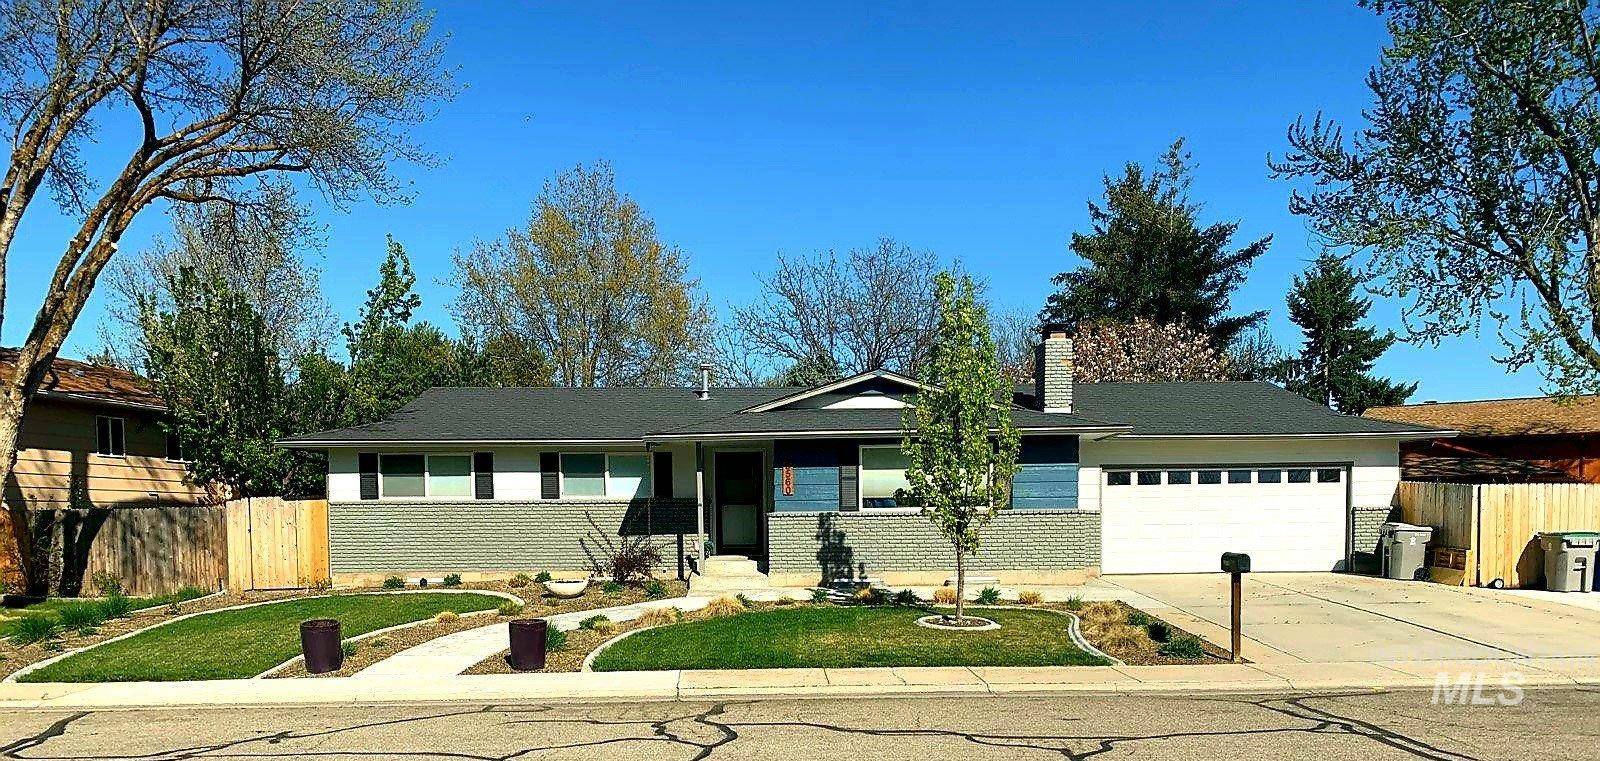 5560 N Marcliffe Ave Property Photo - Boise, ID real estate listing